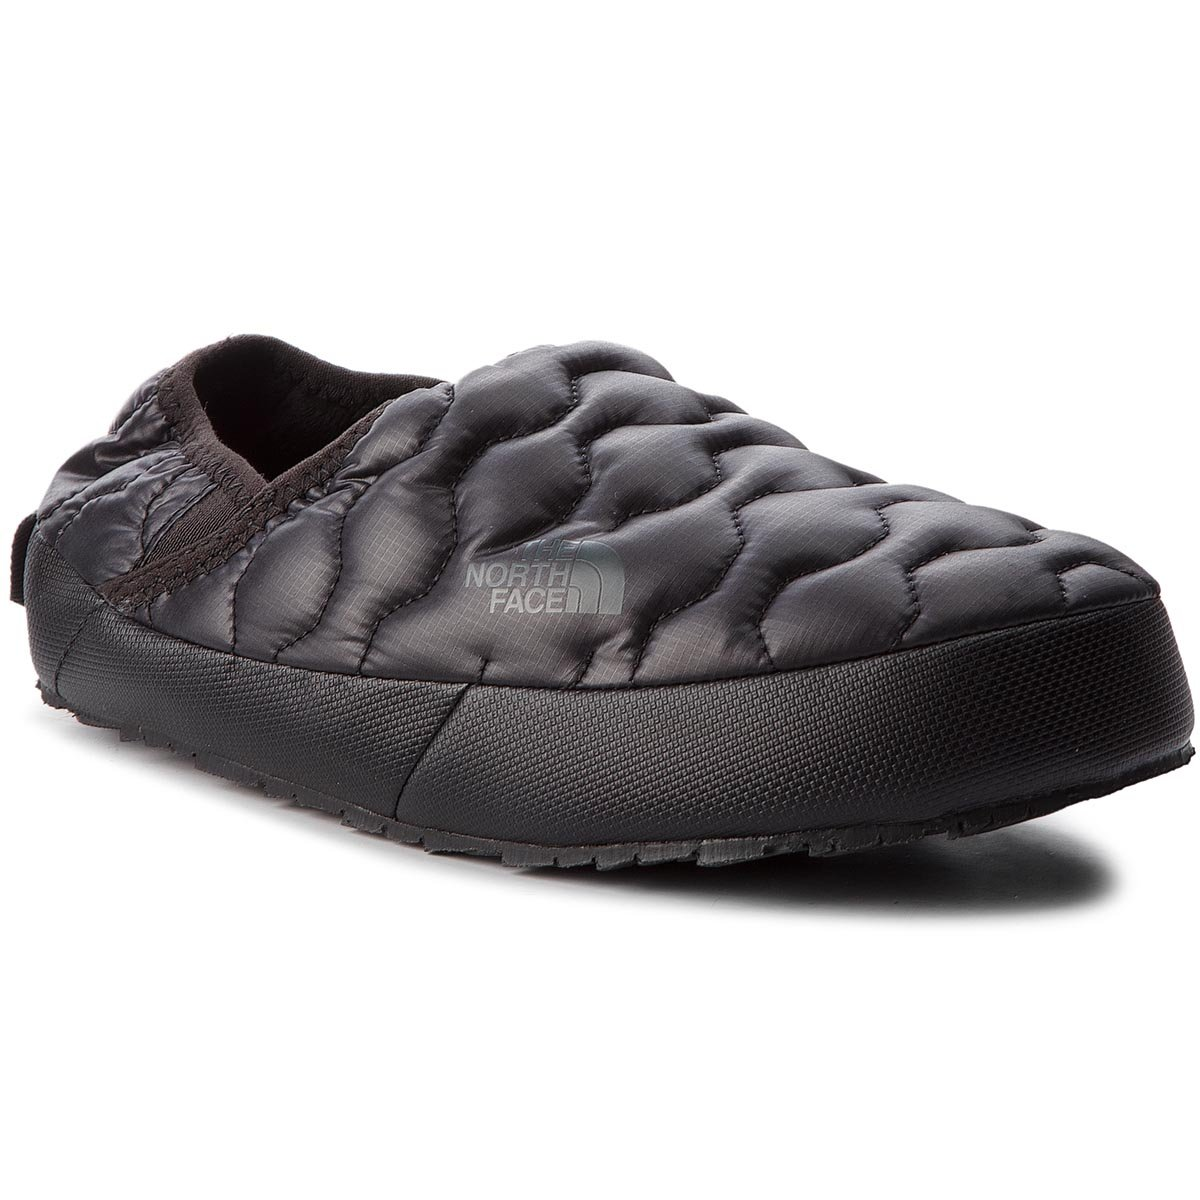 Kapcie THE NORTH FACE - Thermoball Traction Mule IV T993IFYWY Shiny Tnf Black/Beluga Grey